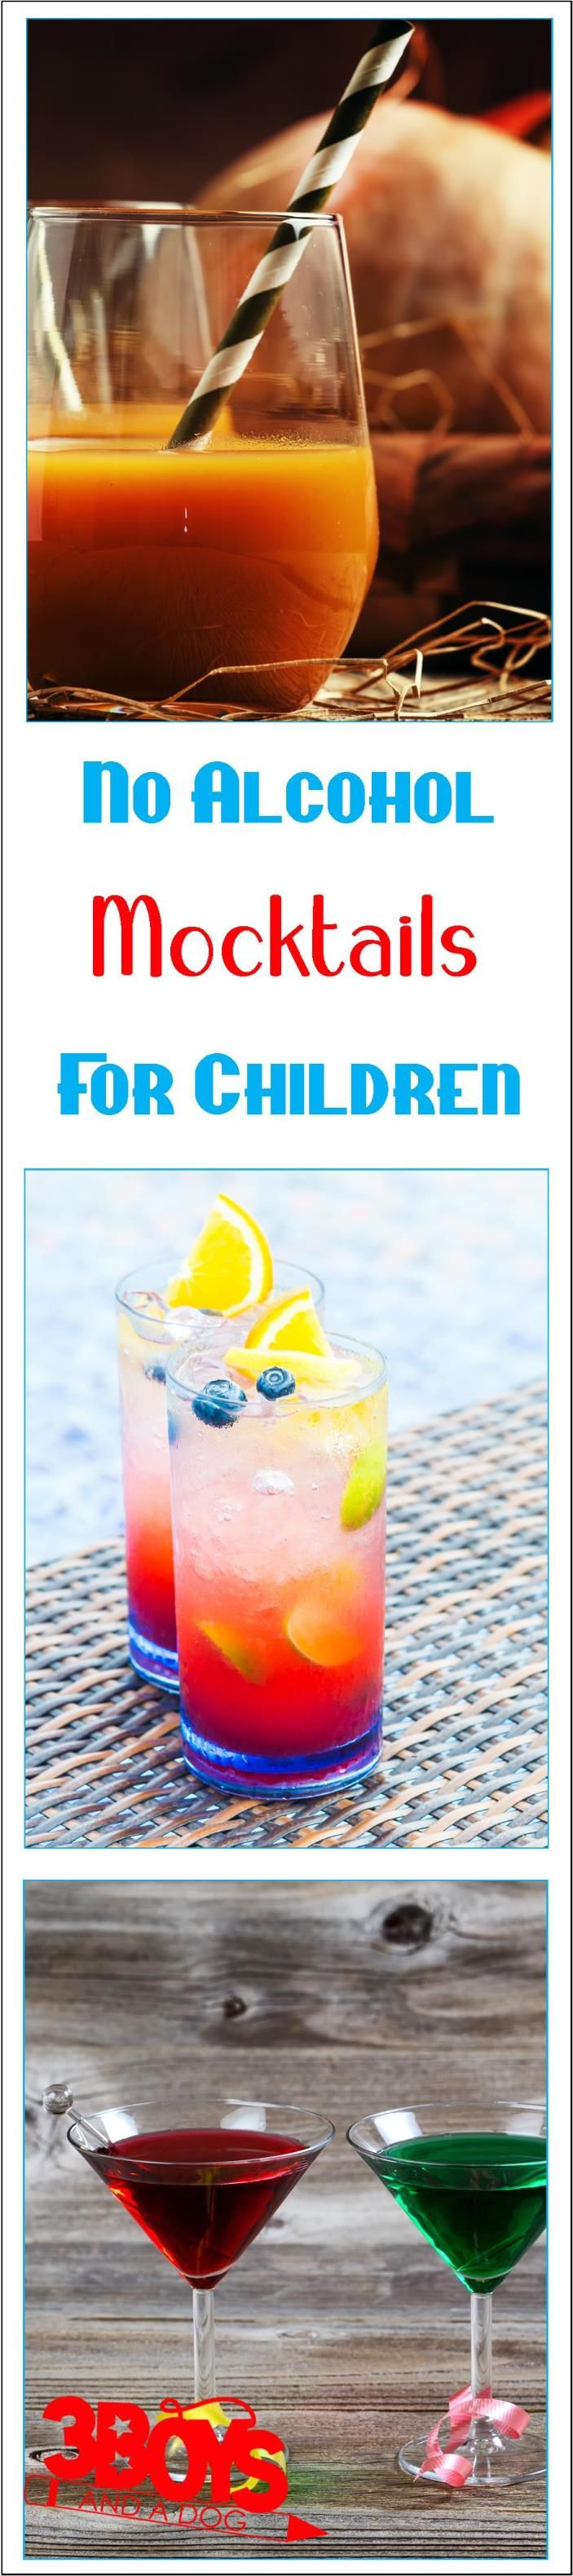 From sparkling drinks to creamy beverages, these mocktails for kids mimic their alcohol-infused counterparts, but are safe for most children and pregnant women!